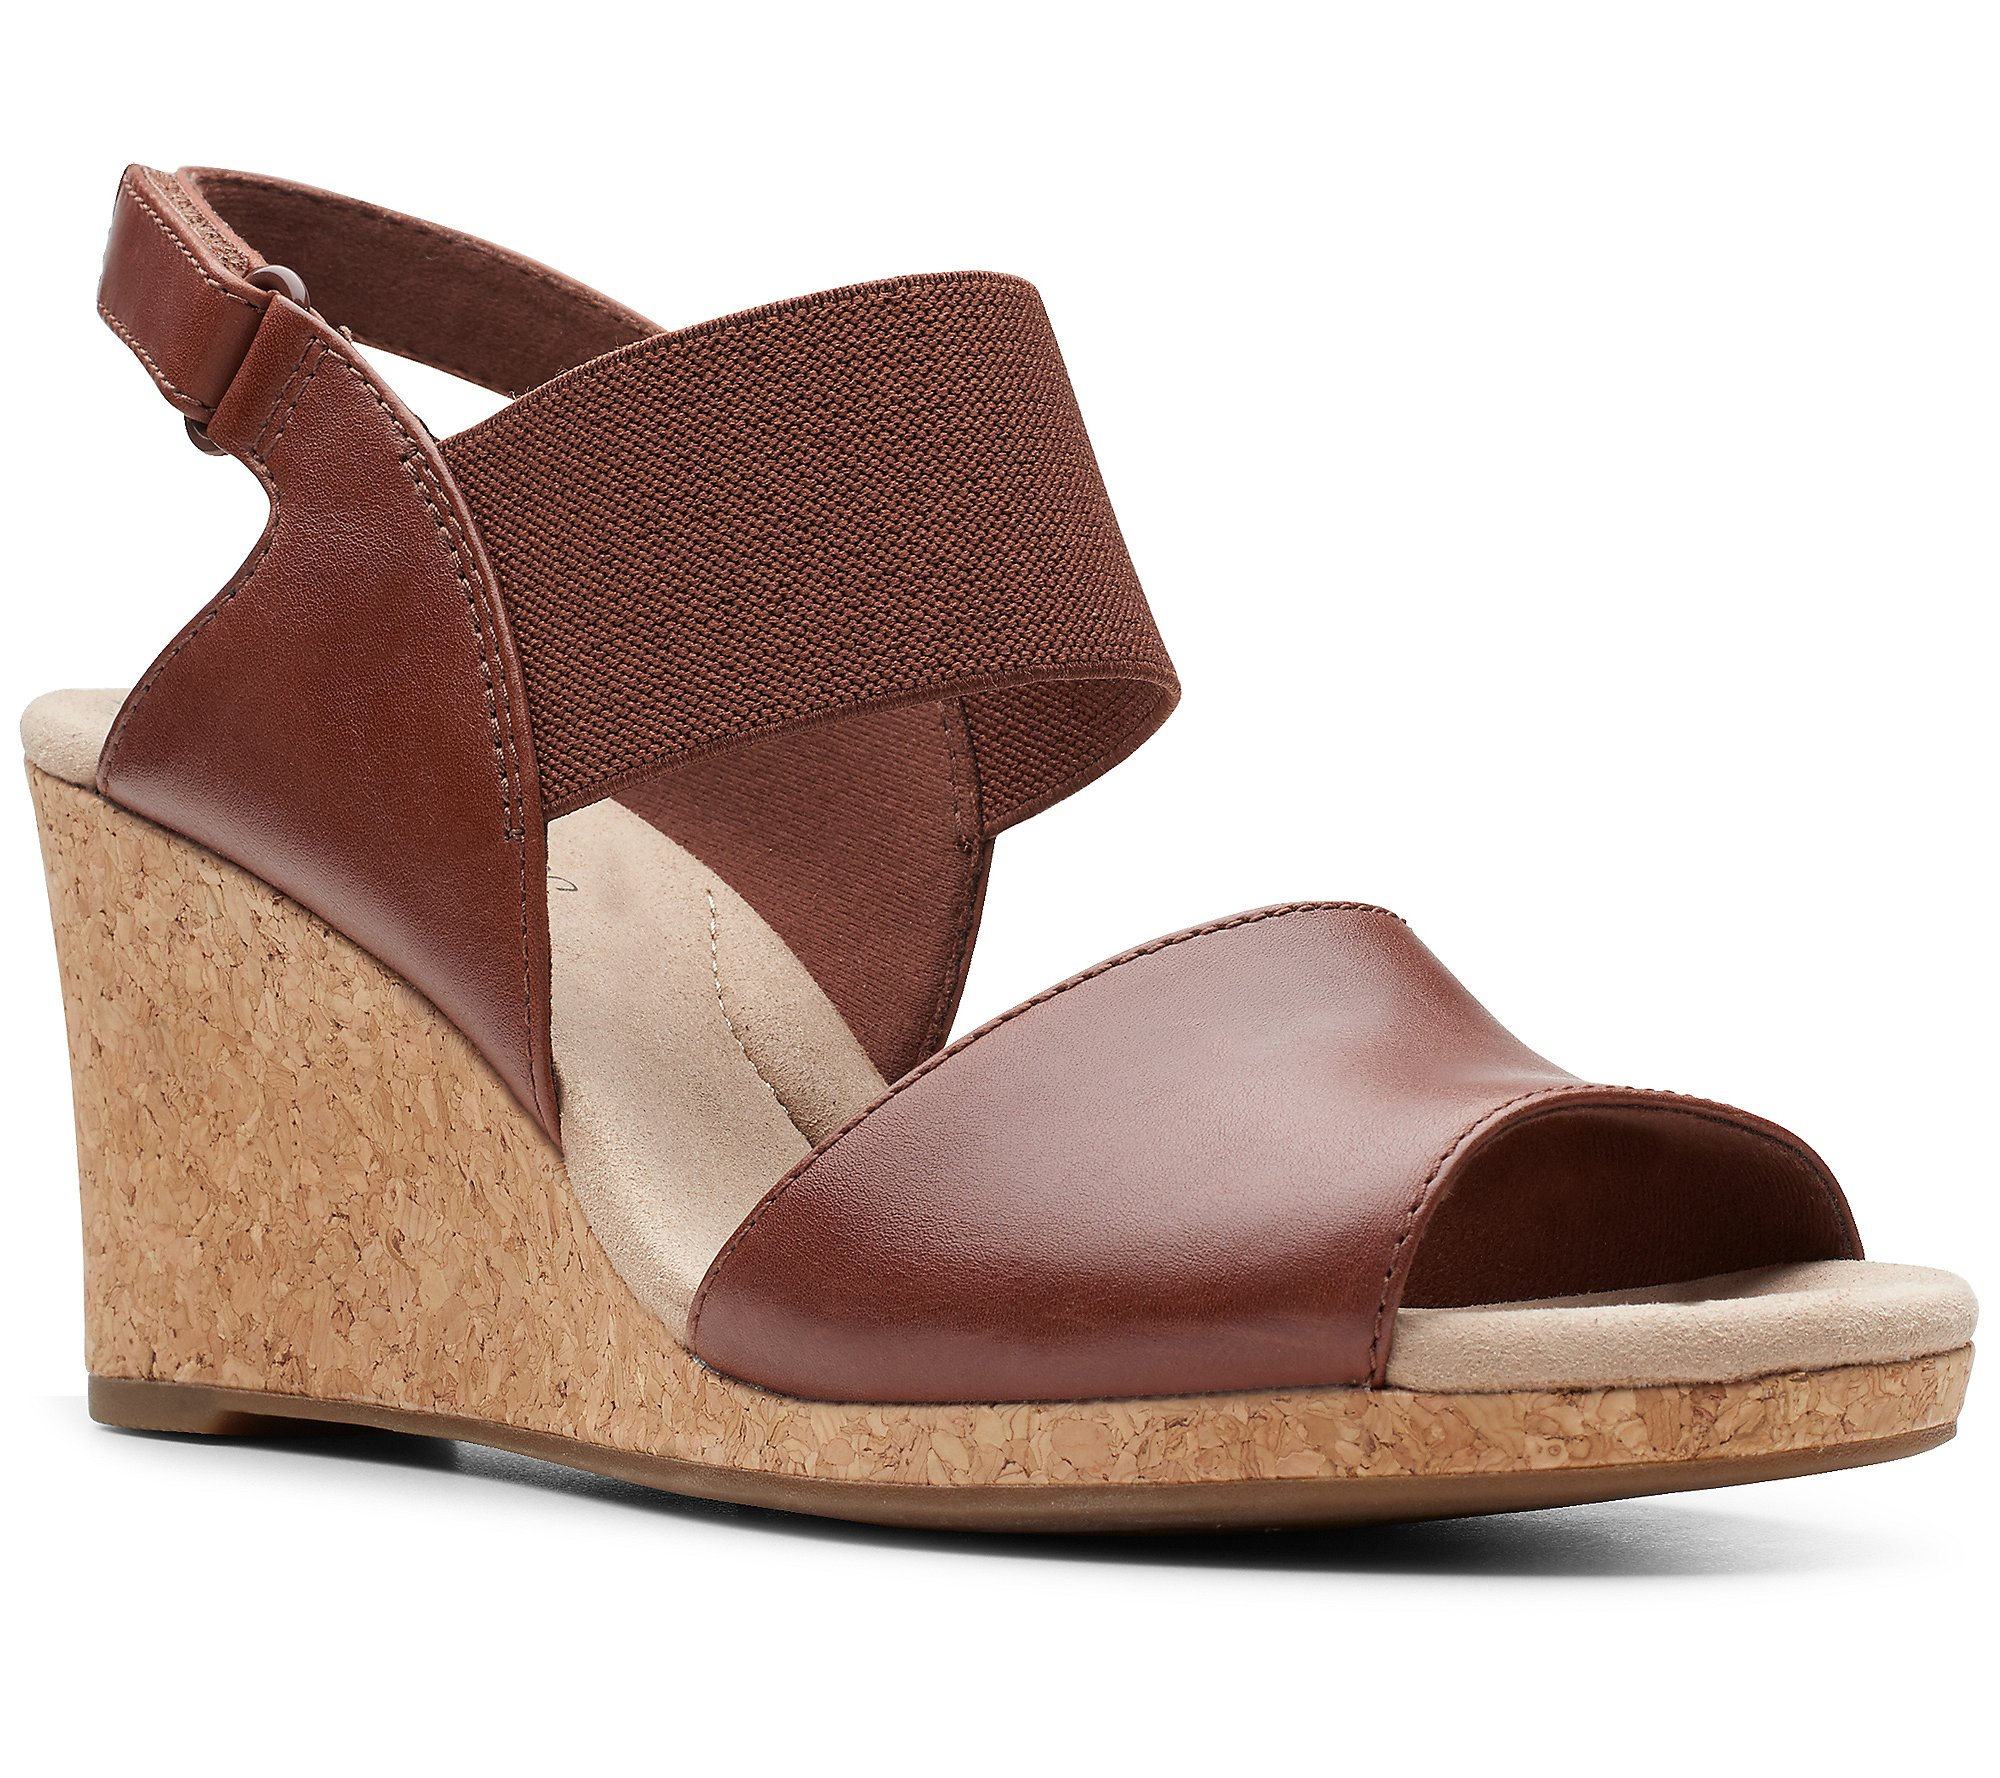 Clarks Womens Lafley Lily Brown Leather Wedge Sandals